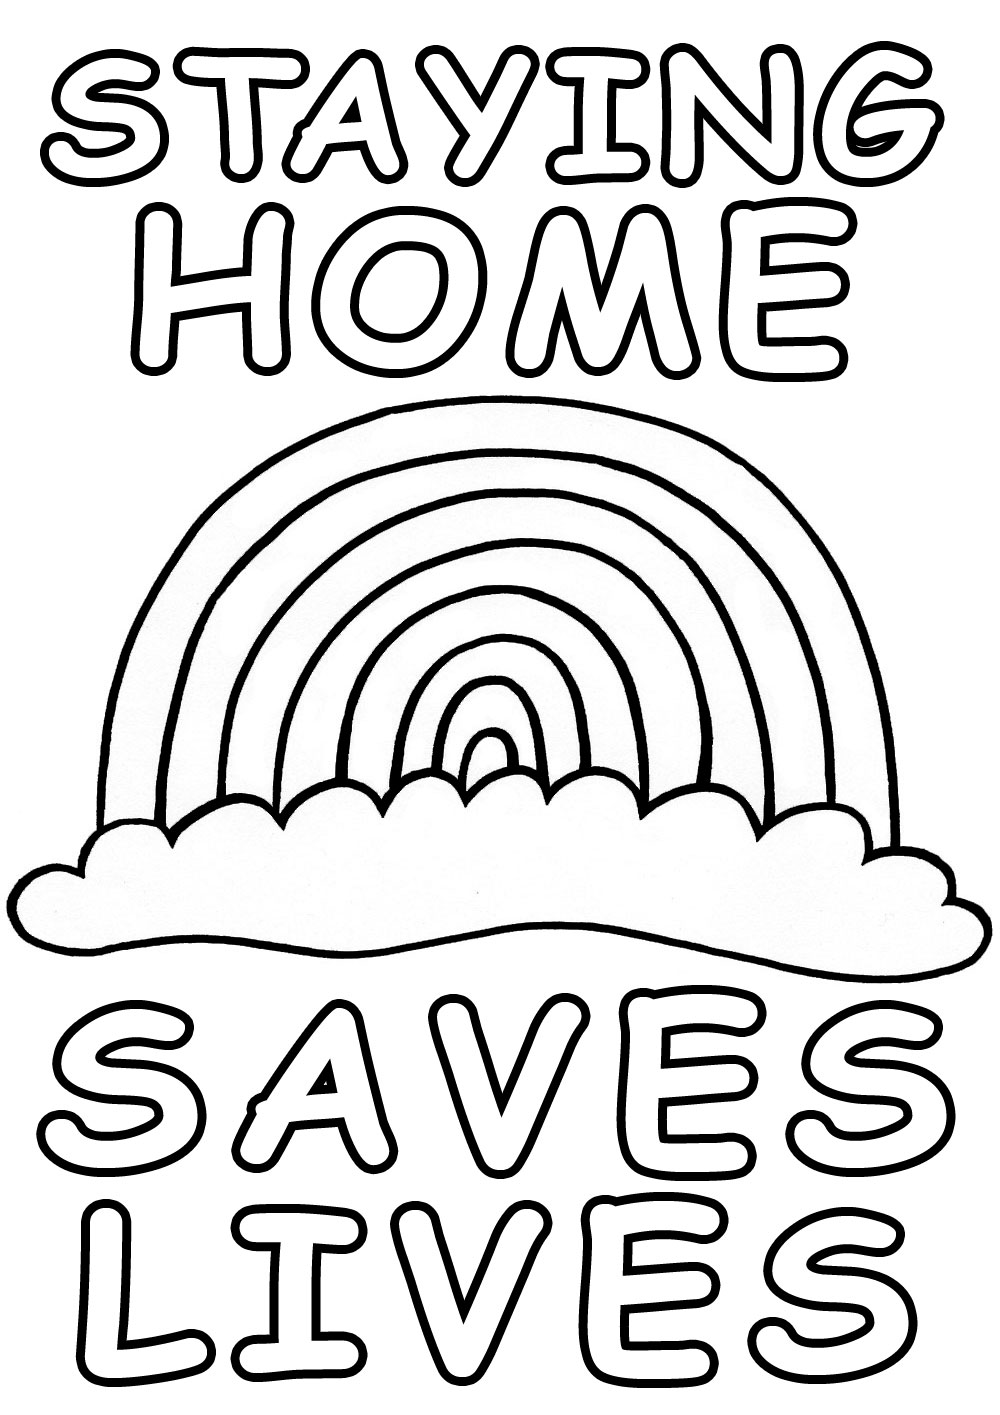 A kids colouring poster dessigned with the COVID19 crisis in mind. It depicts a rainbow and the words: staying home saves lives.